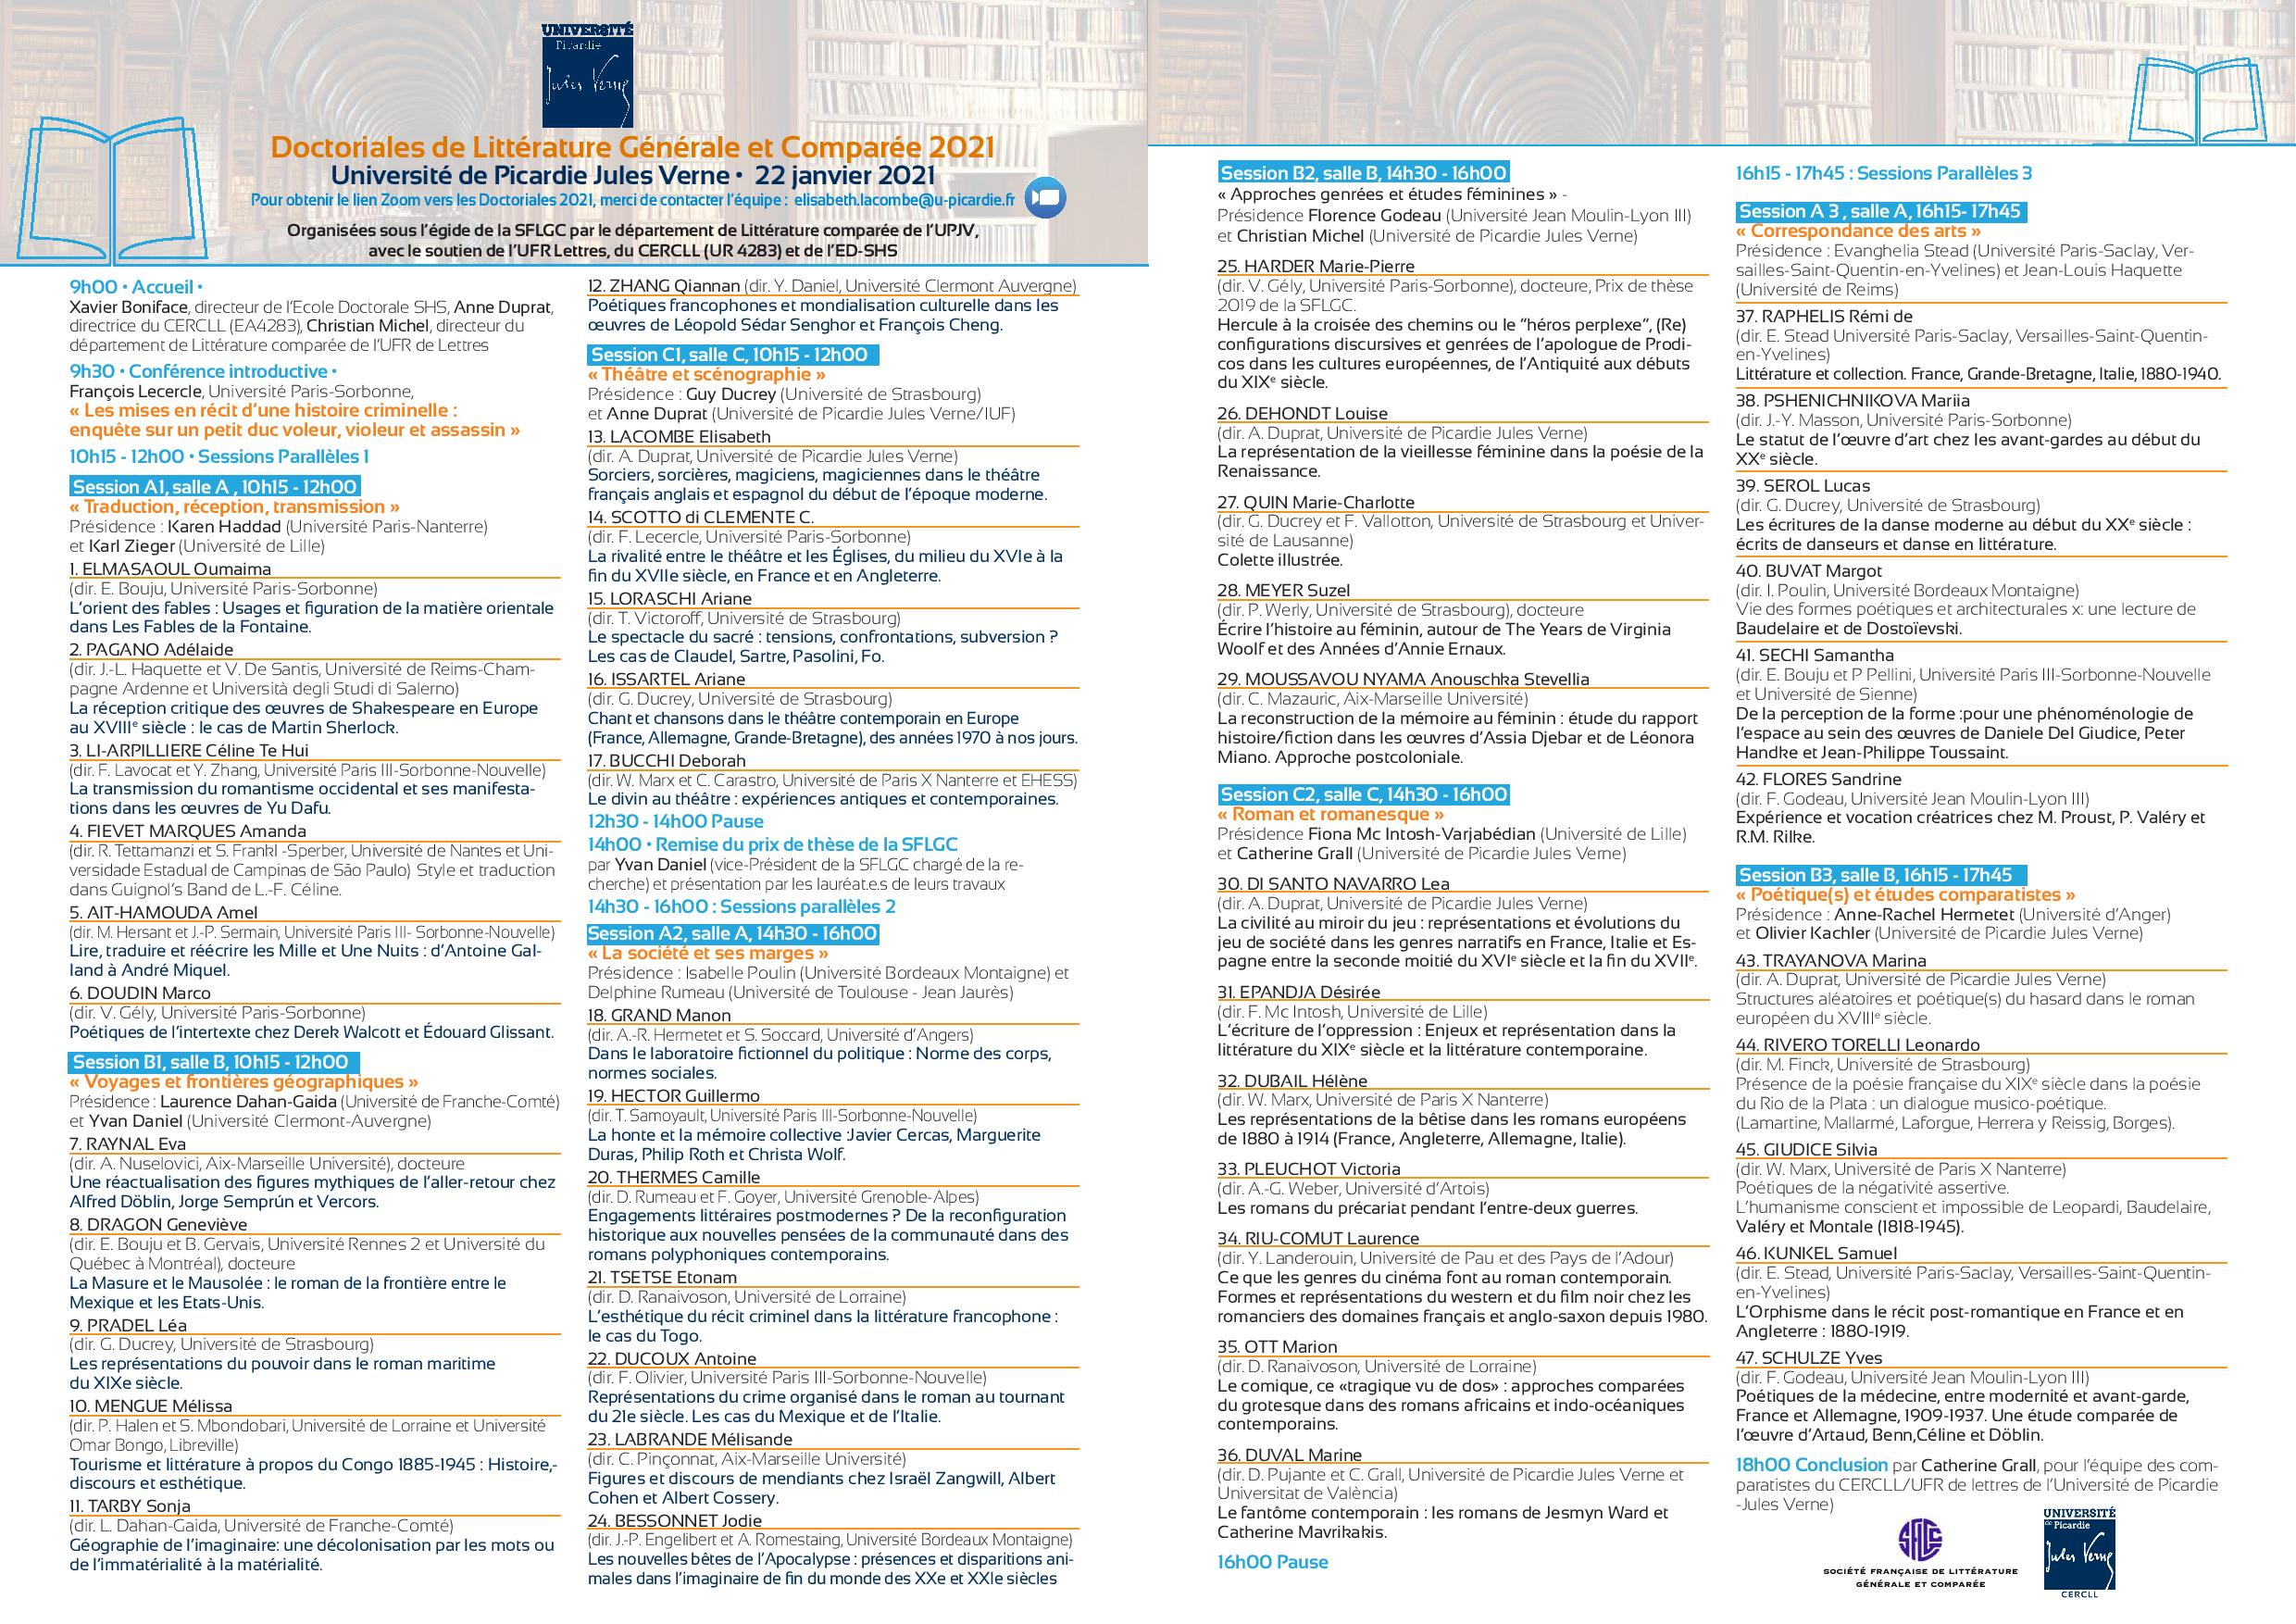 PROGRAMME DOCTORIALES-page-001.jpg